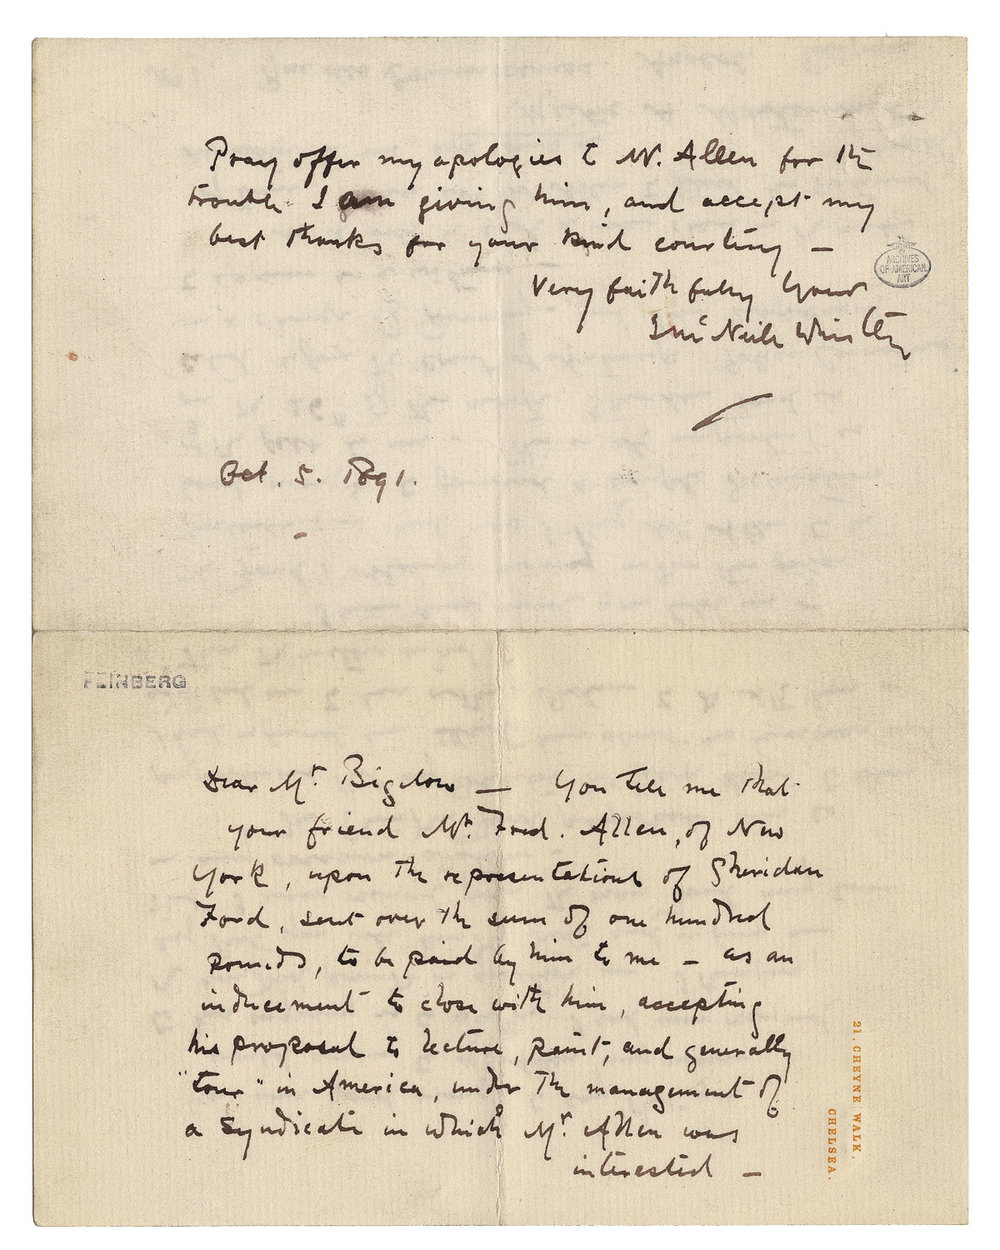 James McNeill Whistler letter to Charles Bowen Bigelow, 1891 (page 153)